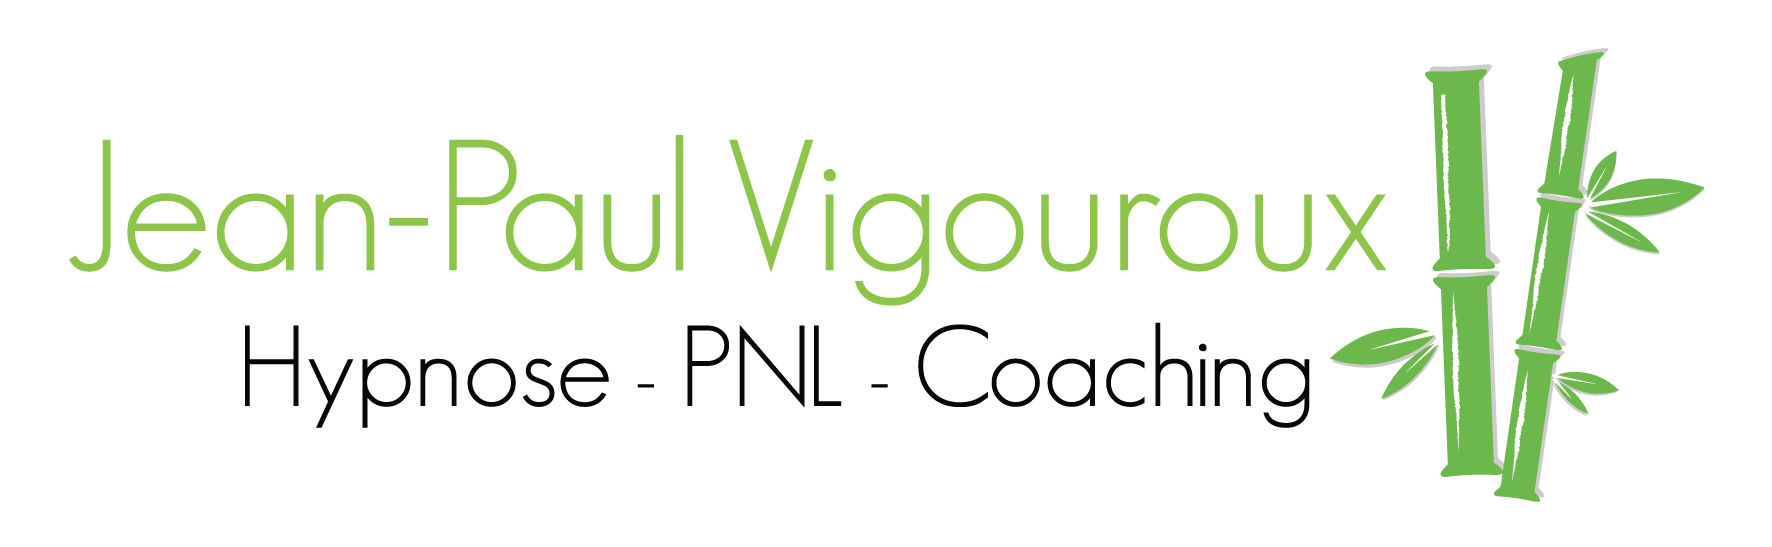 Logo Jean-Paul Vigouroux